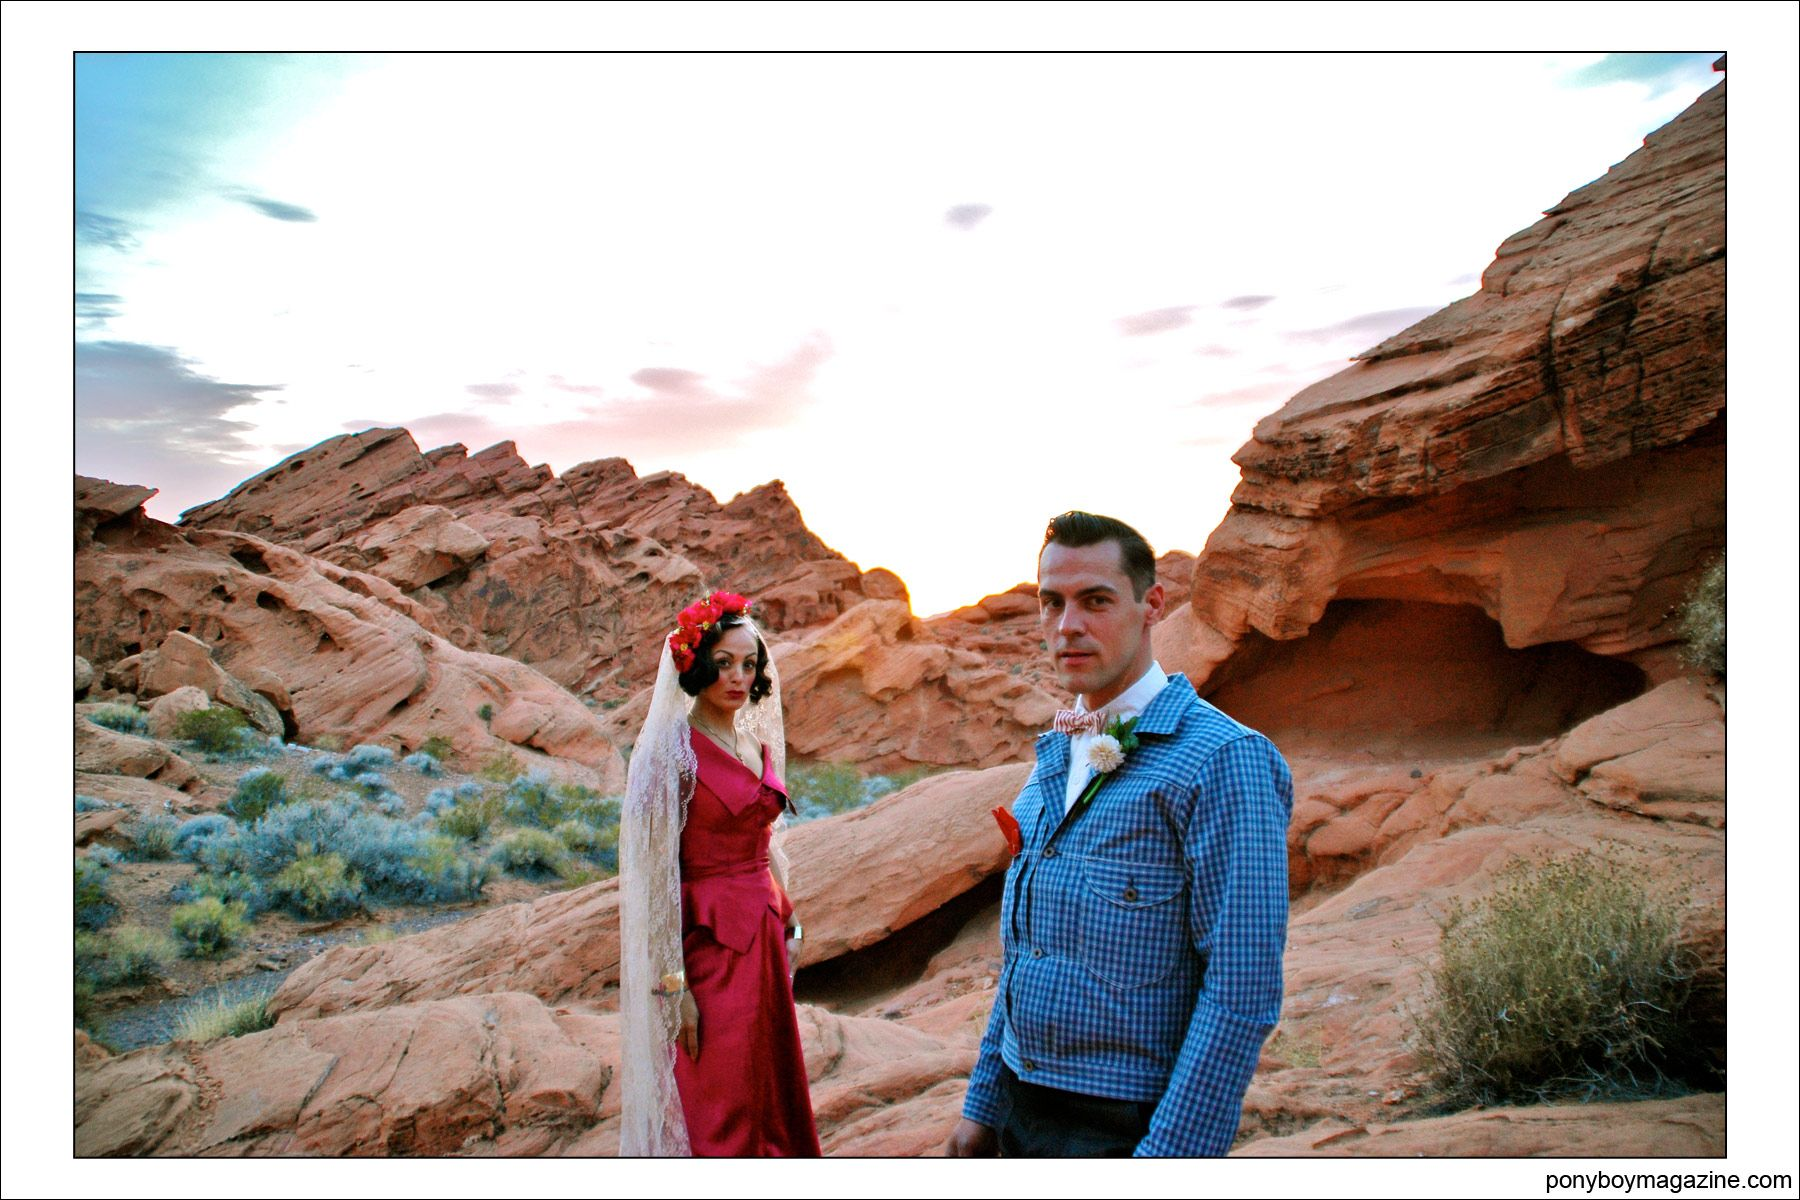 Jim Landwehr and lovely bride Tamara, for Ponyboy Magazine.